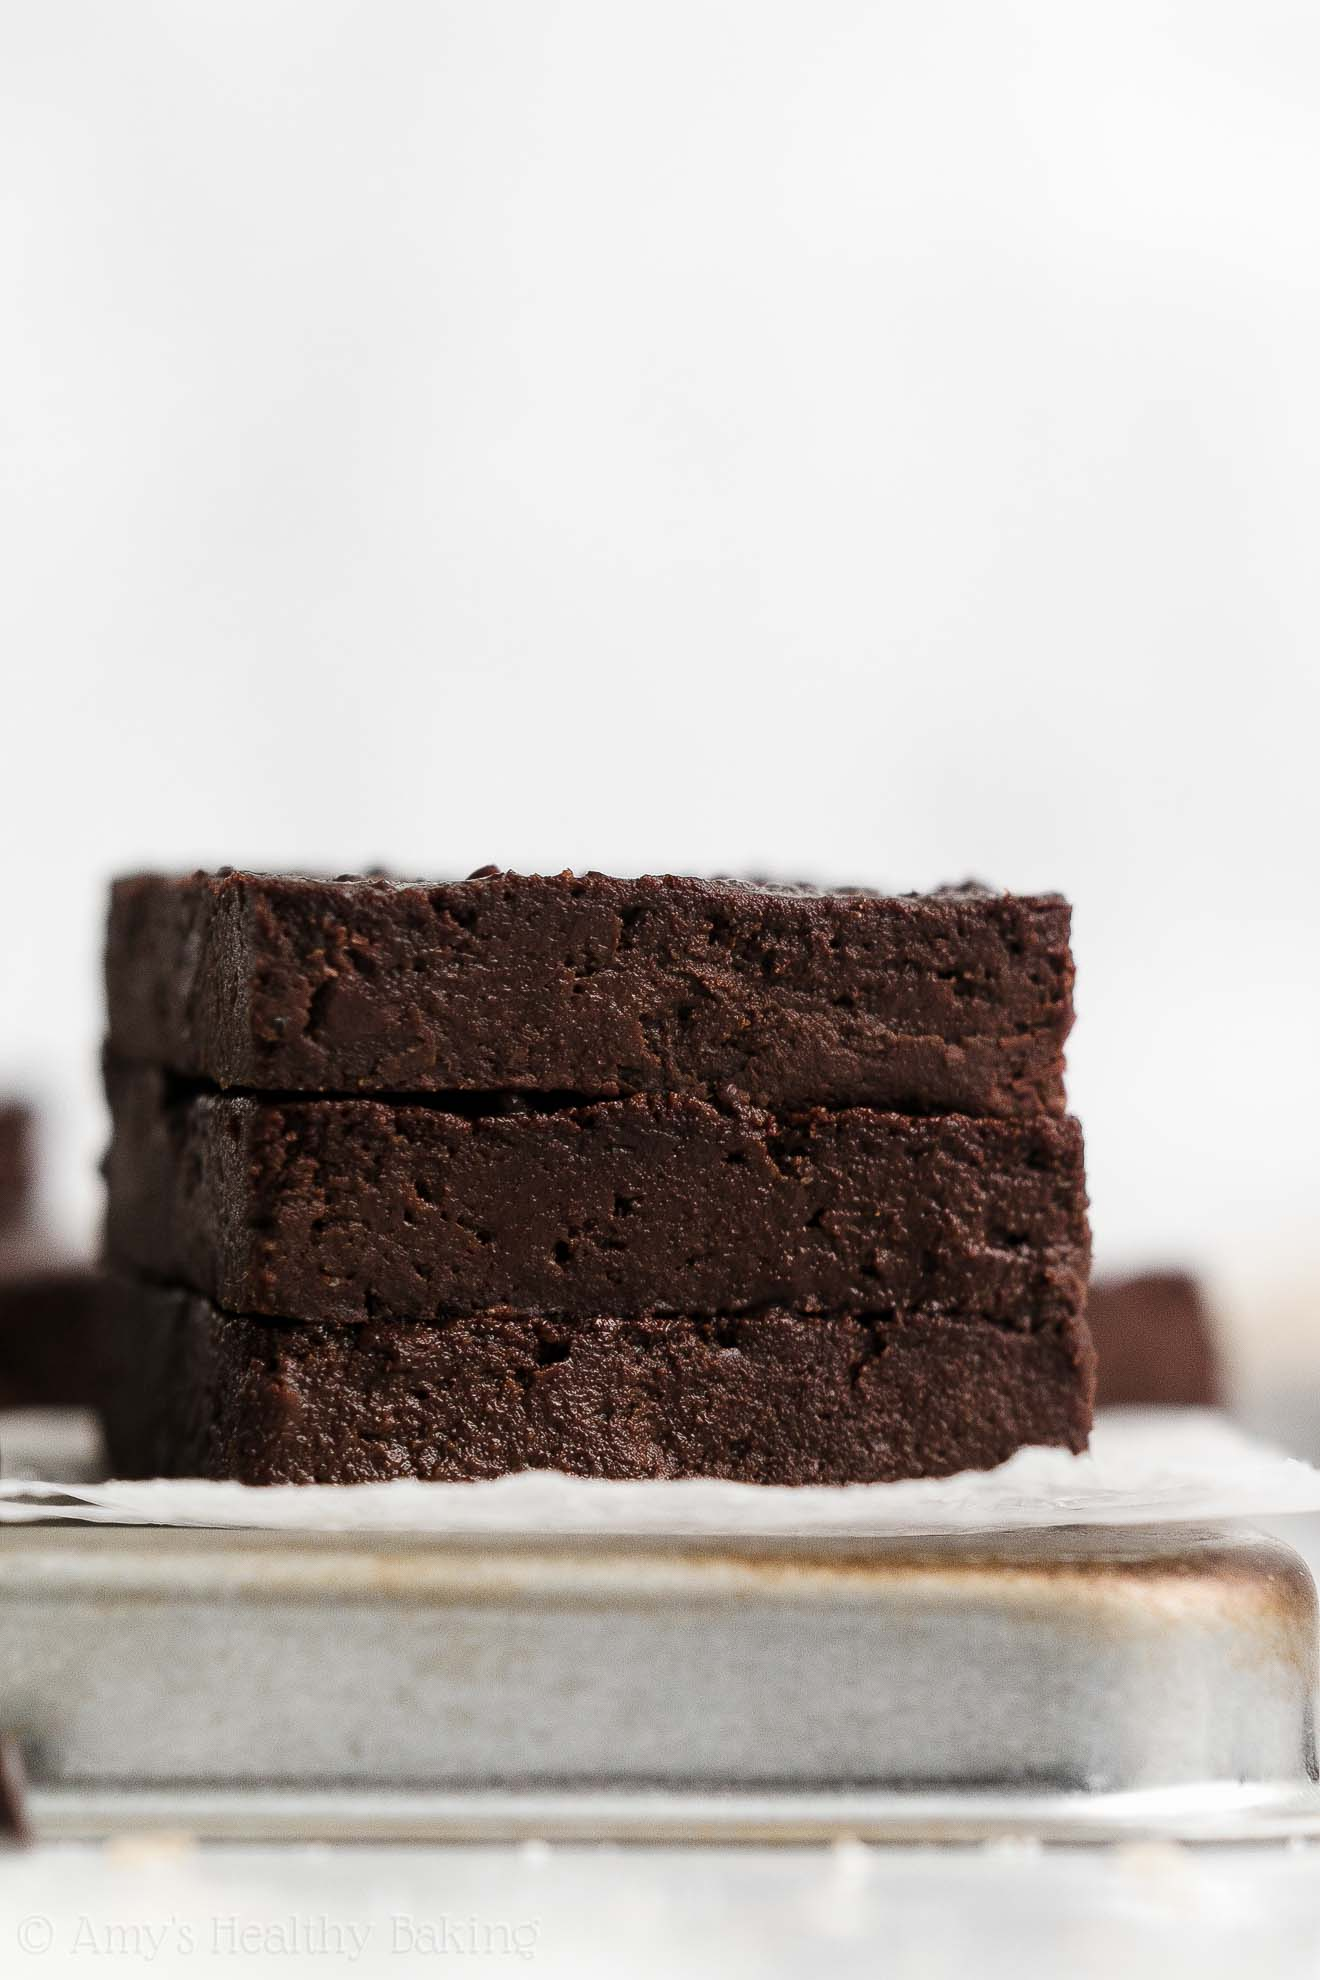 ULTIMATE Best Eas Healthy One-Bowl Fudgy Flourless Gluten Free Vegan Brownies